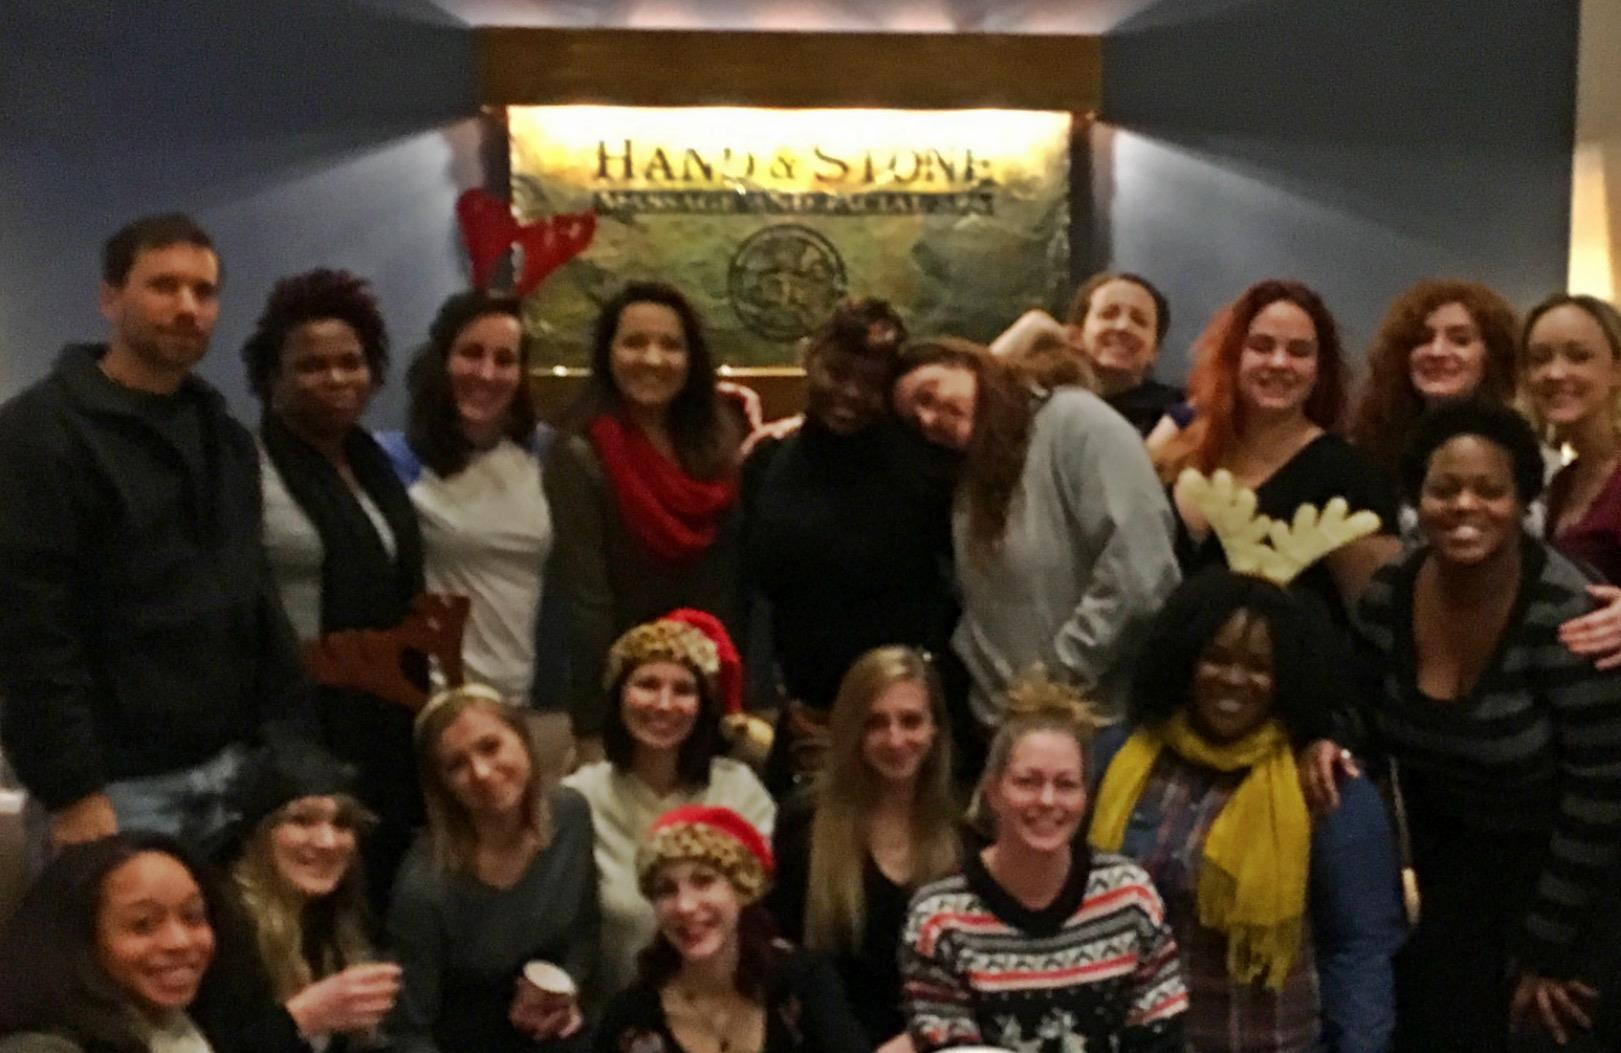 Our faces may be a bit blurry, but the love & Christmas cheer our Carytown team